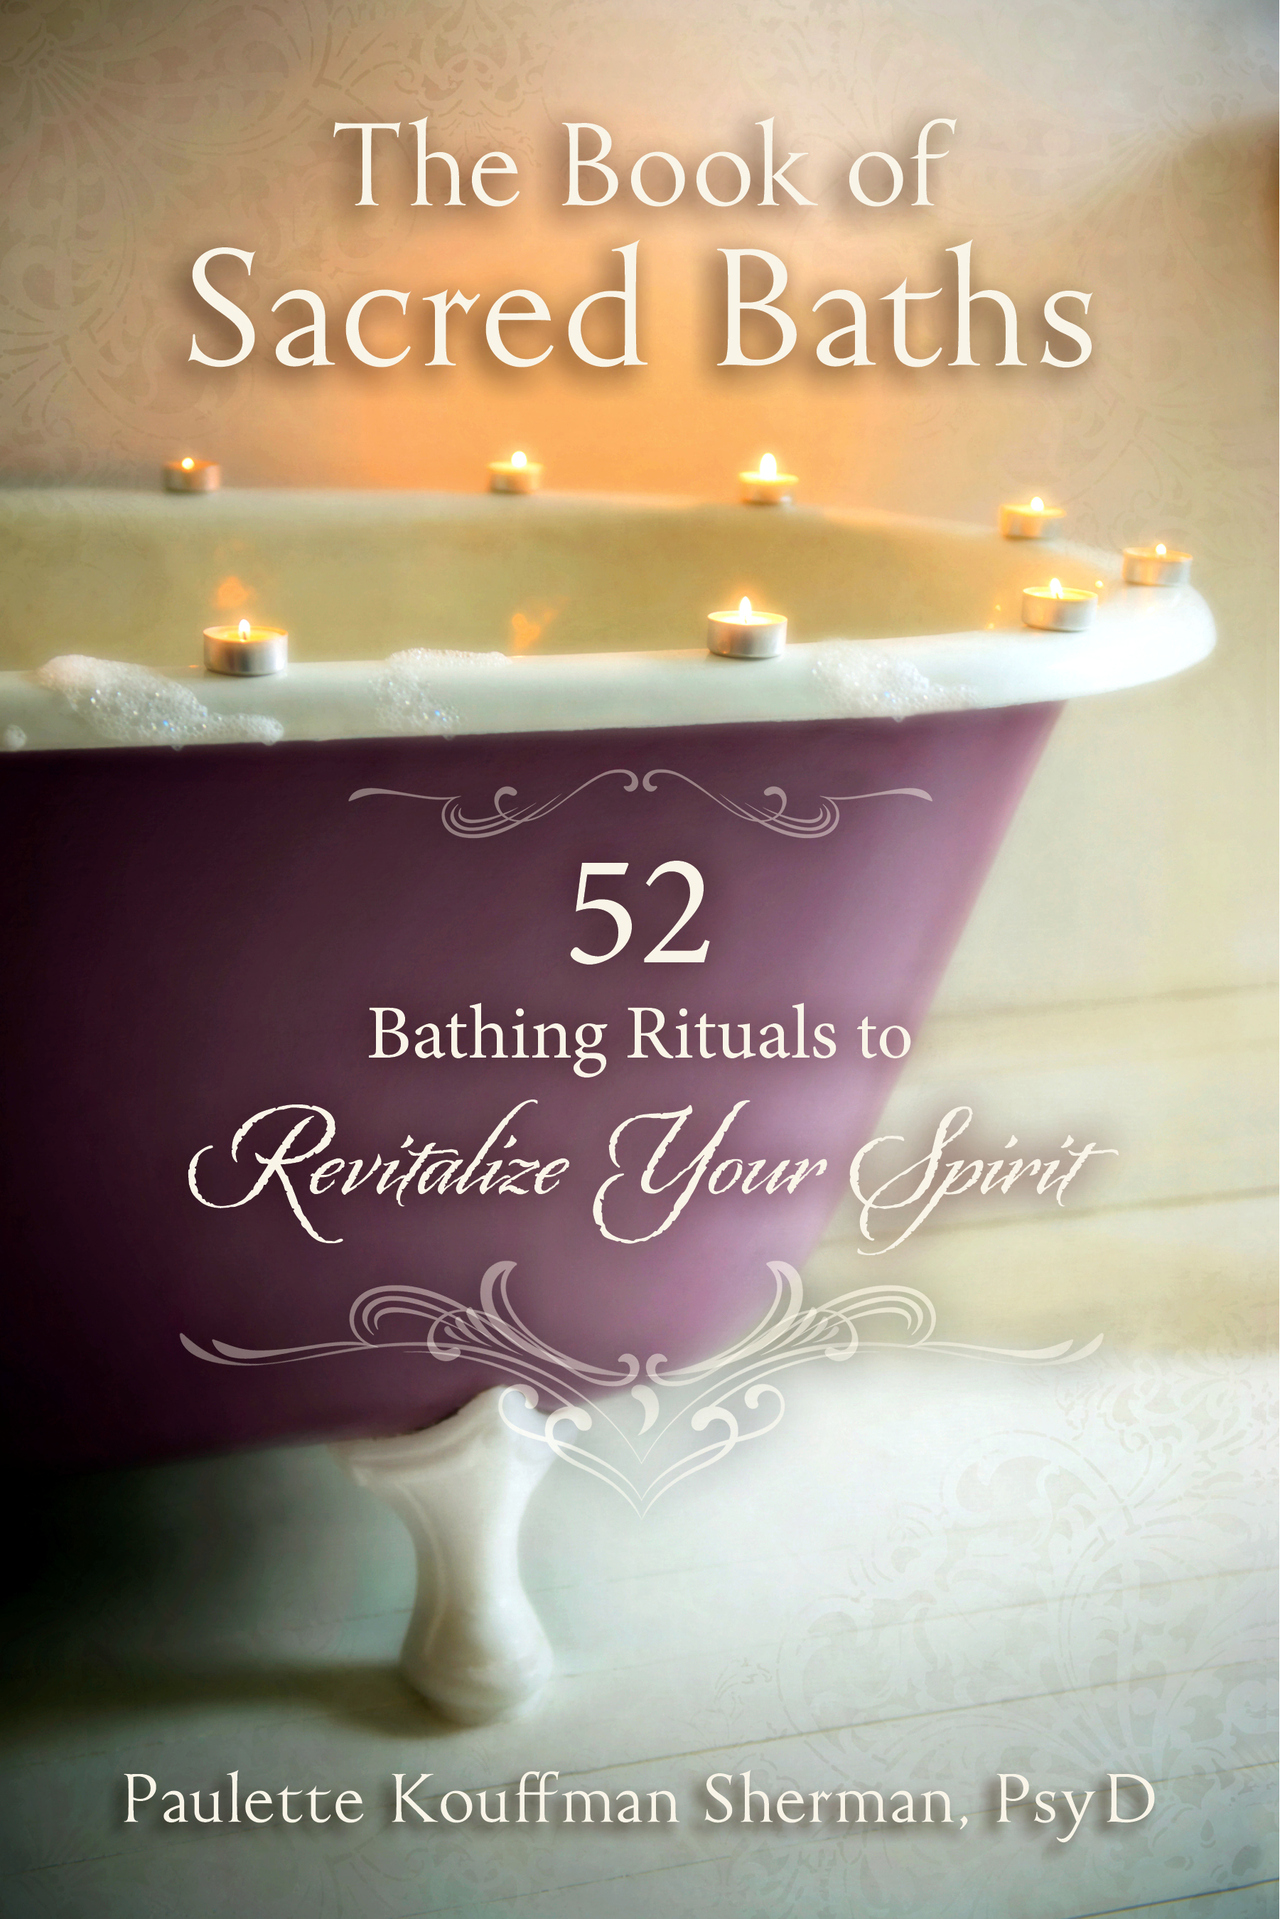 Book of sacred baths book cover